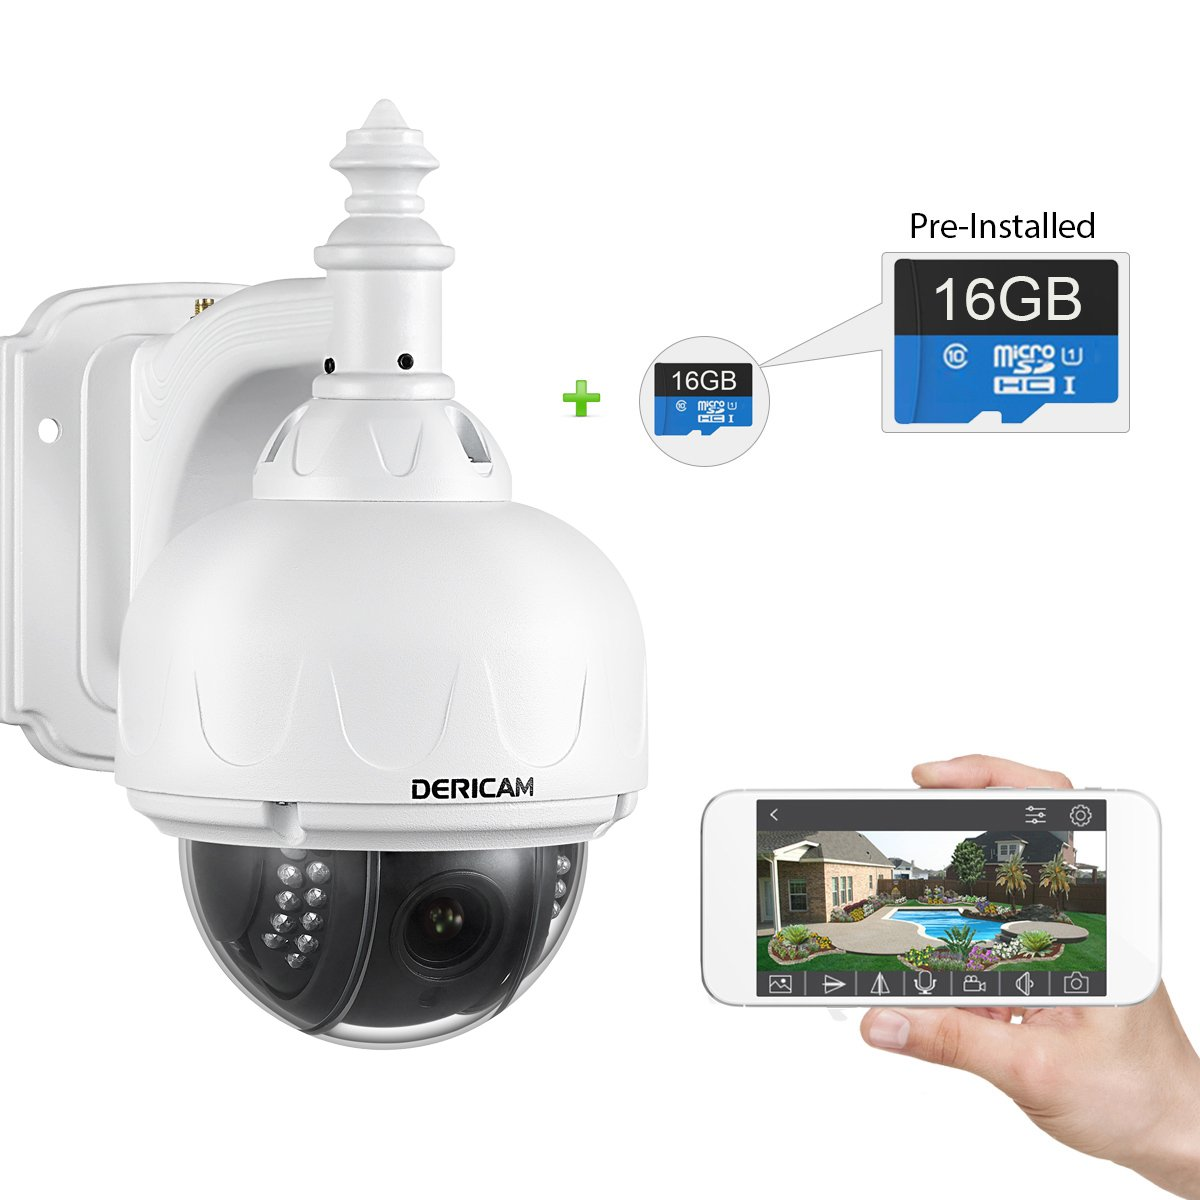 dericam outdoor wifi wireless ip security camera ptz camera 4x optical zoom ebay. Black Bedroom Furniture Sets. Home Design Ideas